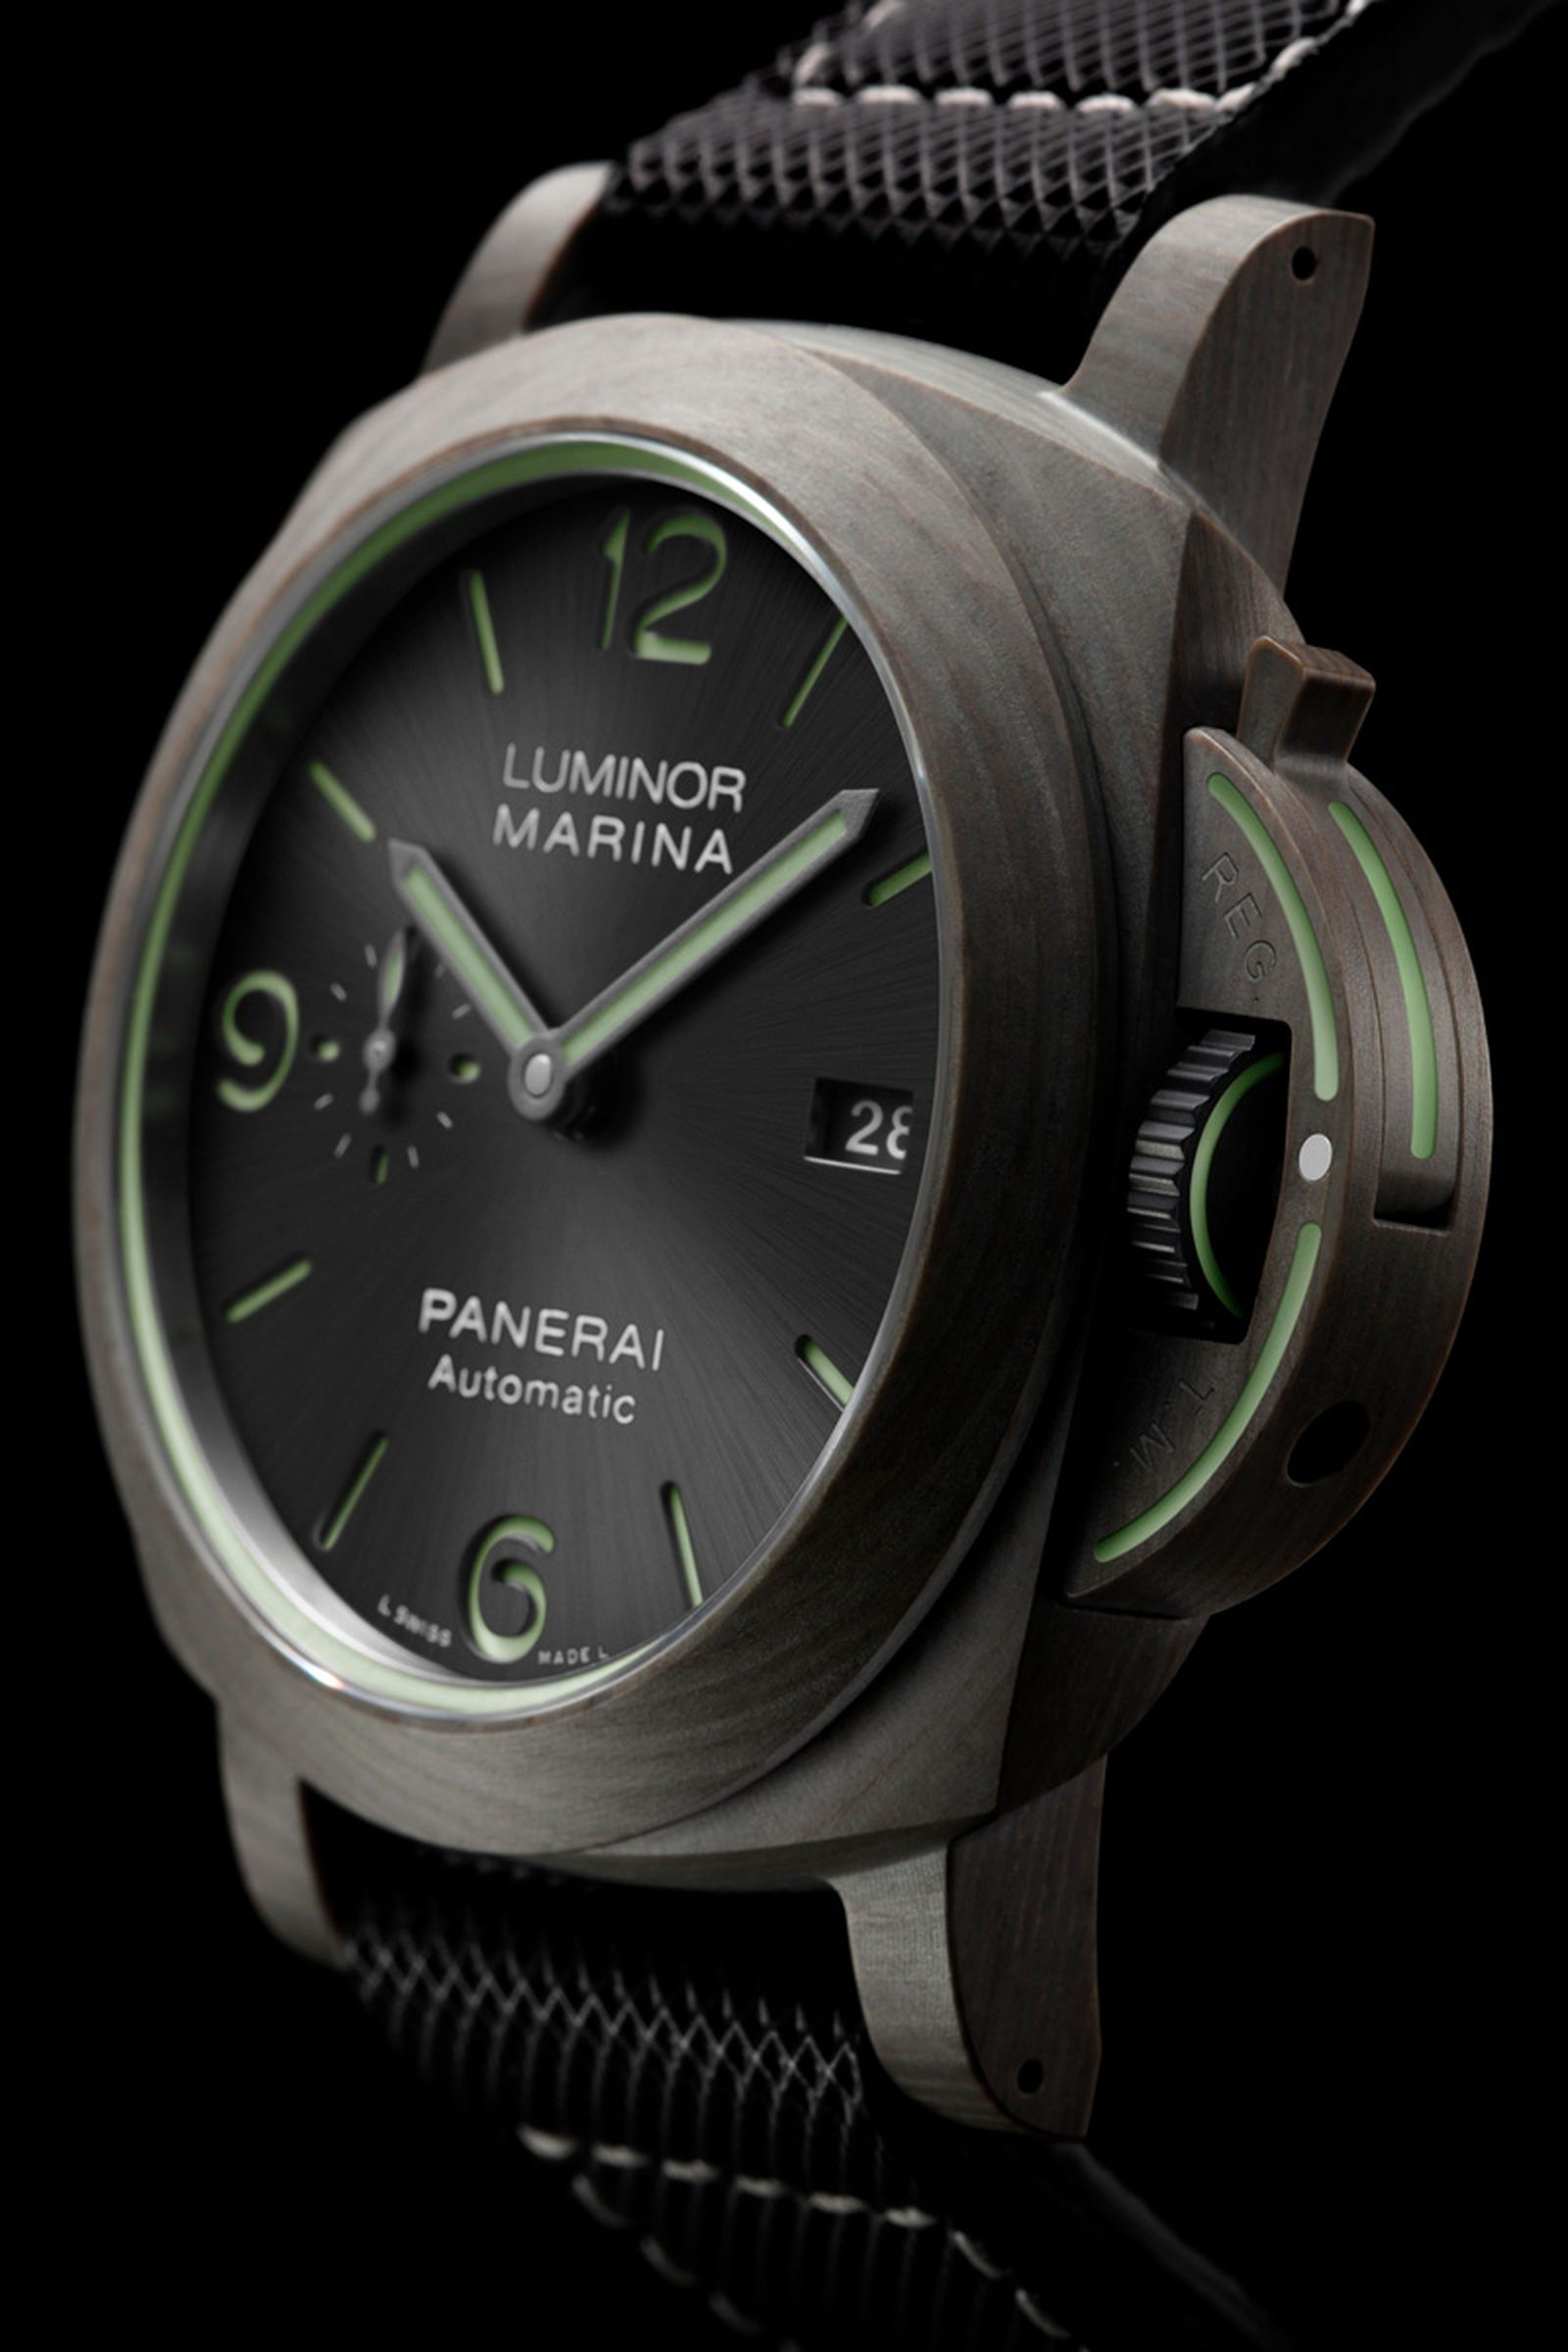 rethink-timing-four-cool-watches-watchesandwonders-com-02